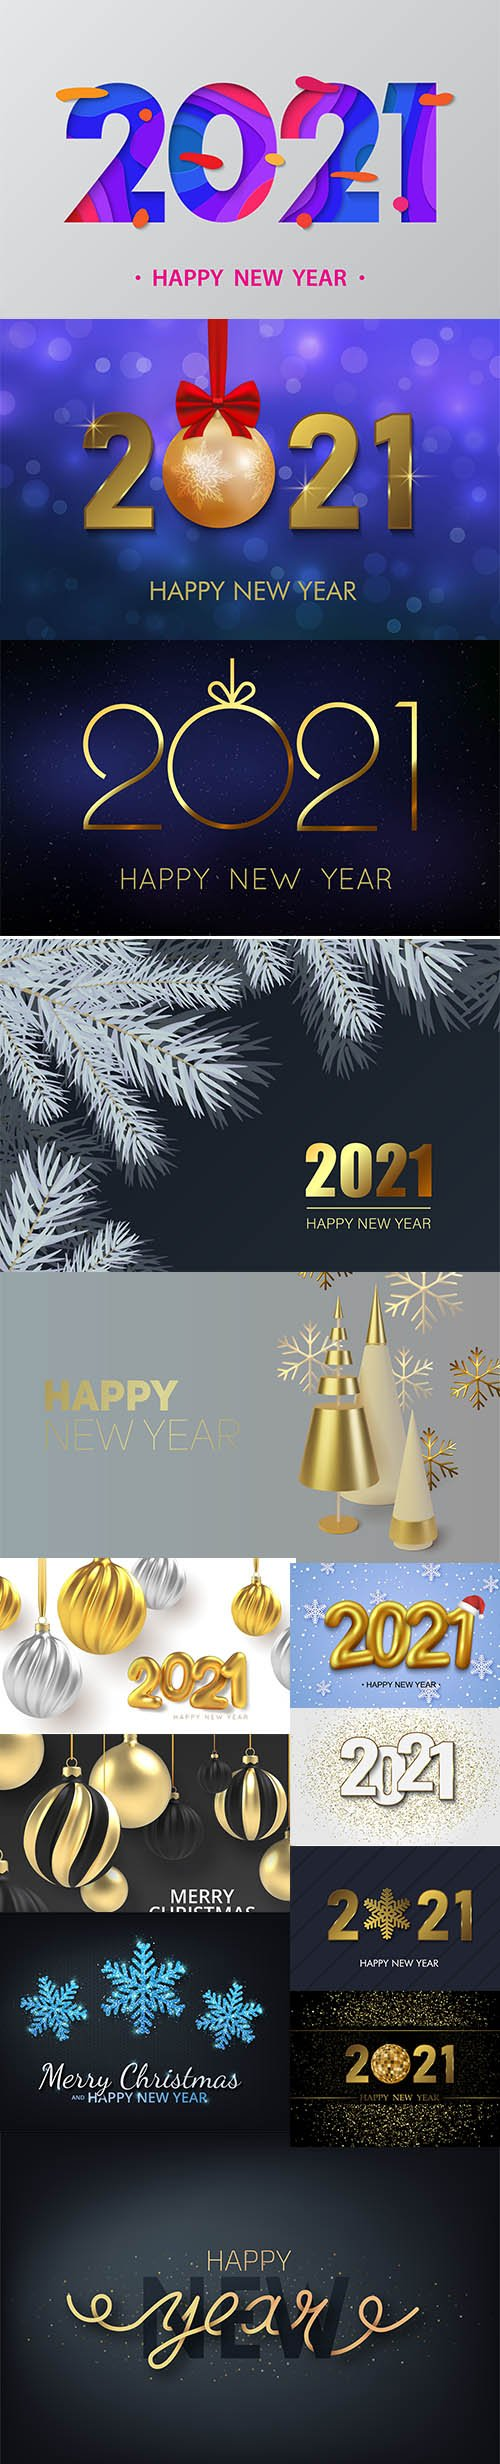 2021 new year background